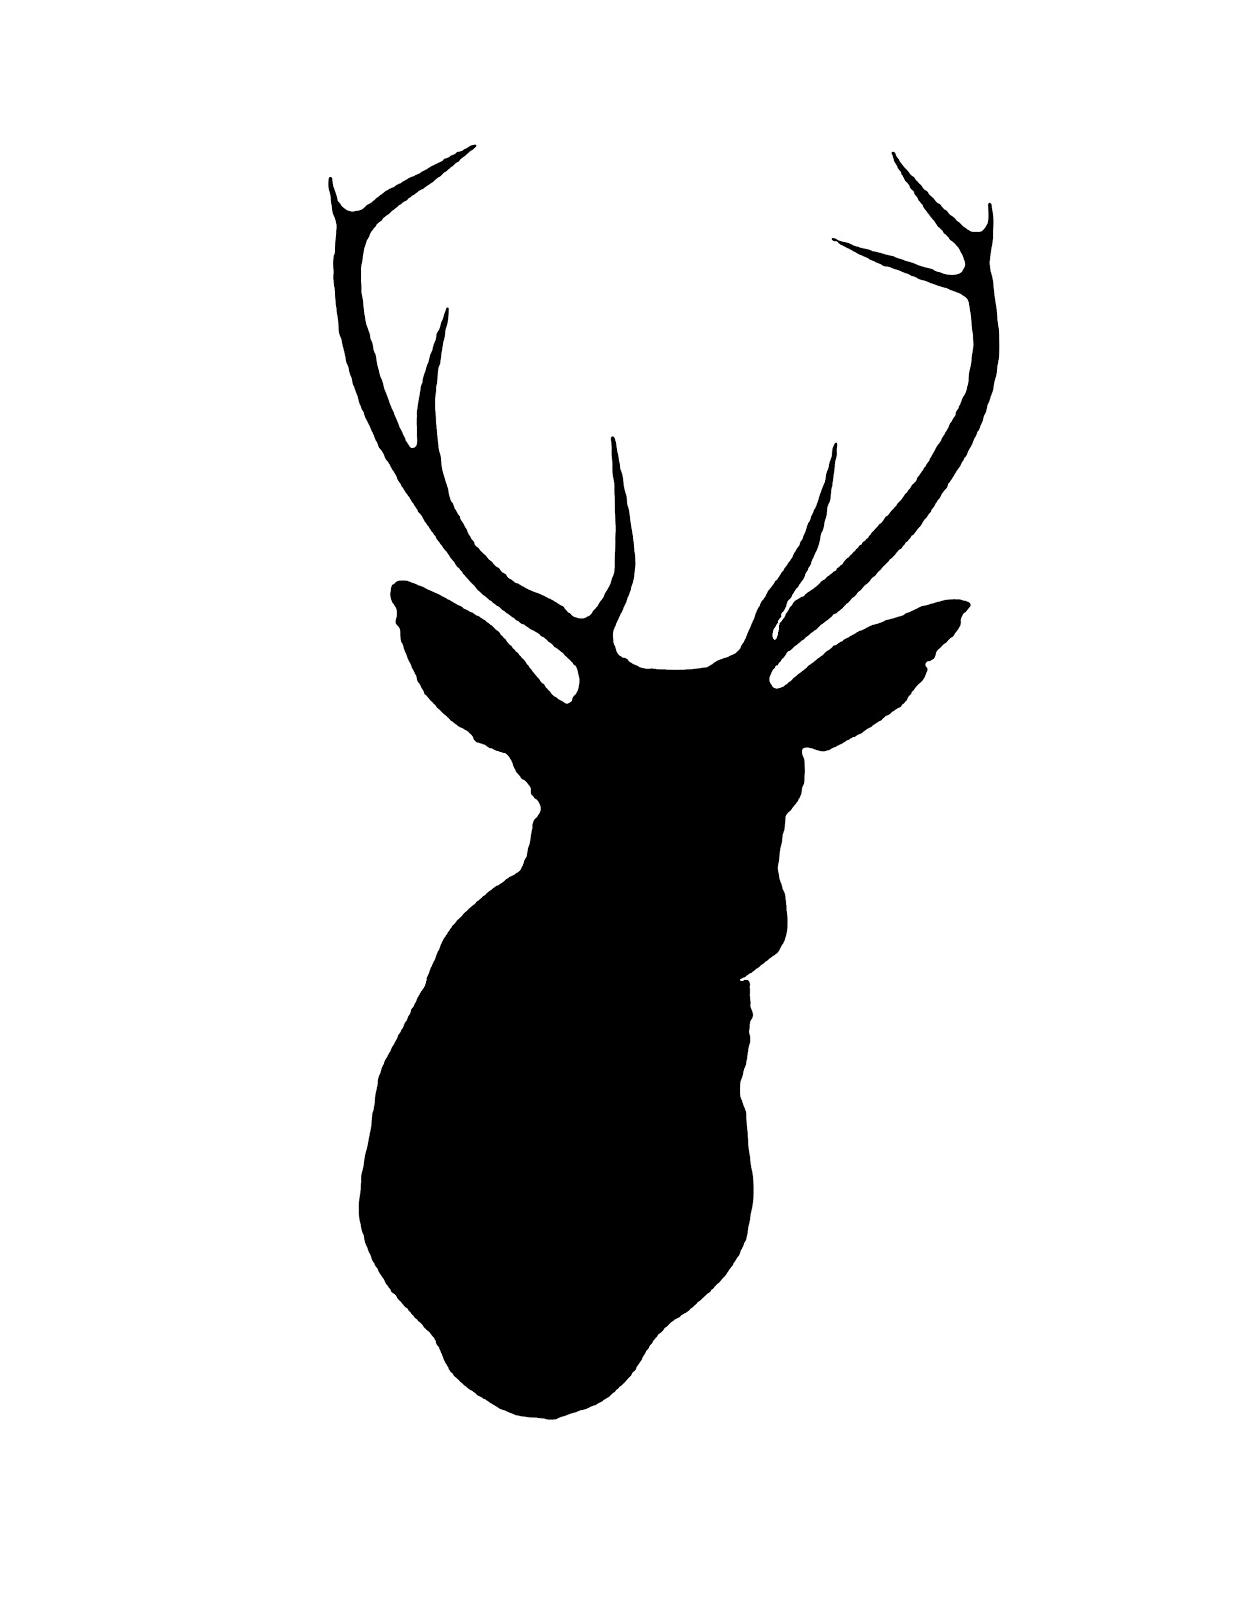 1236x1600 Collection Of Deer Head Silhouette Drawing High Quality